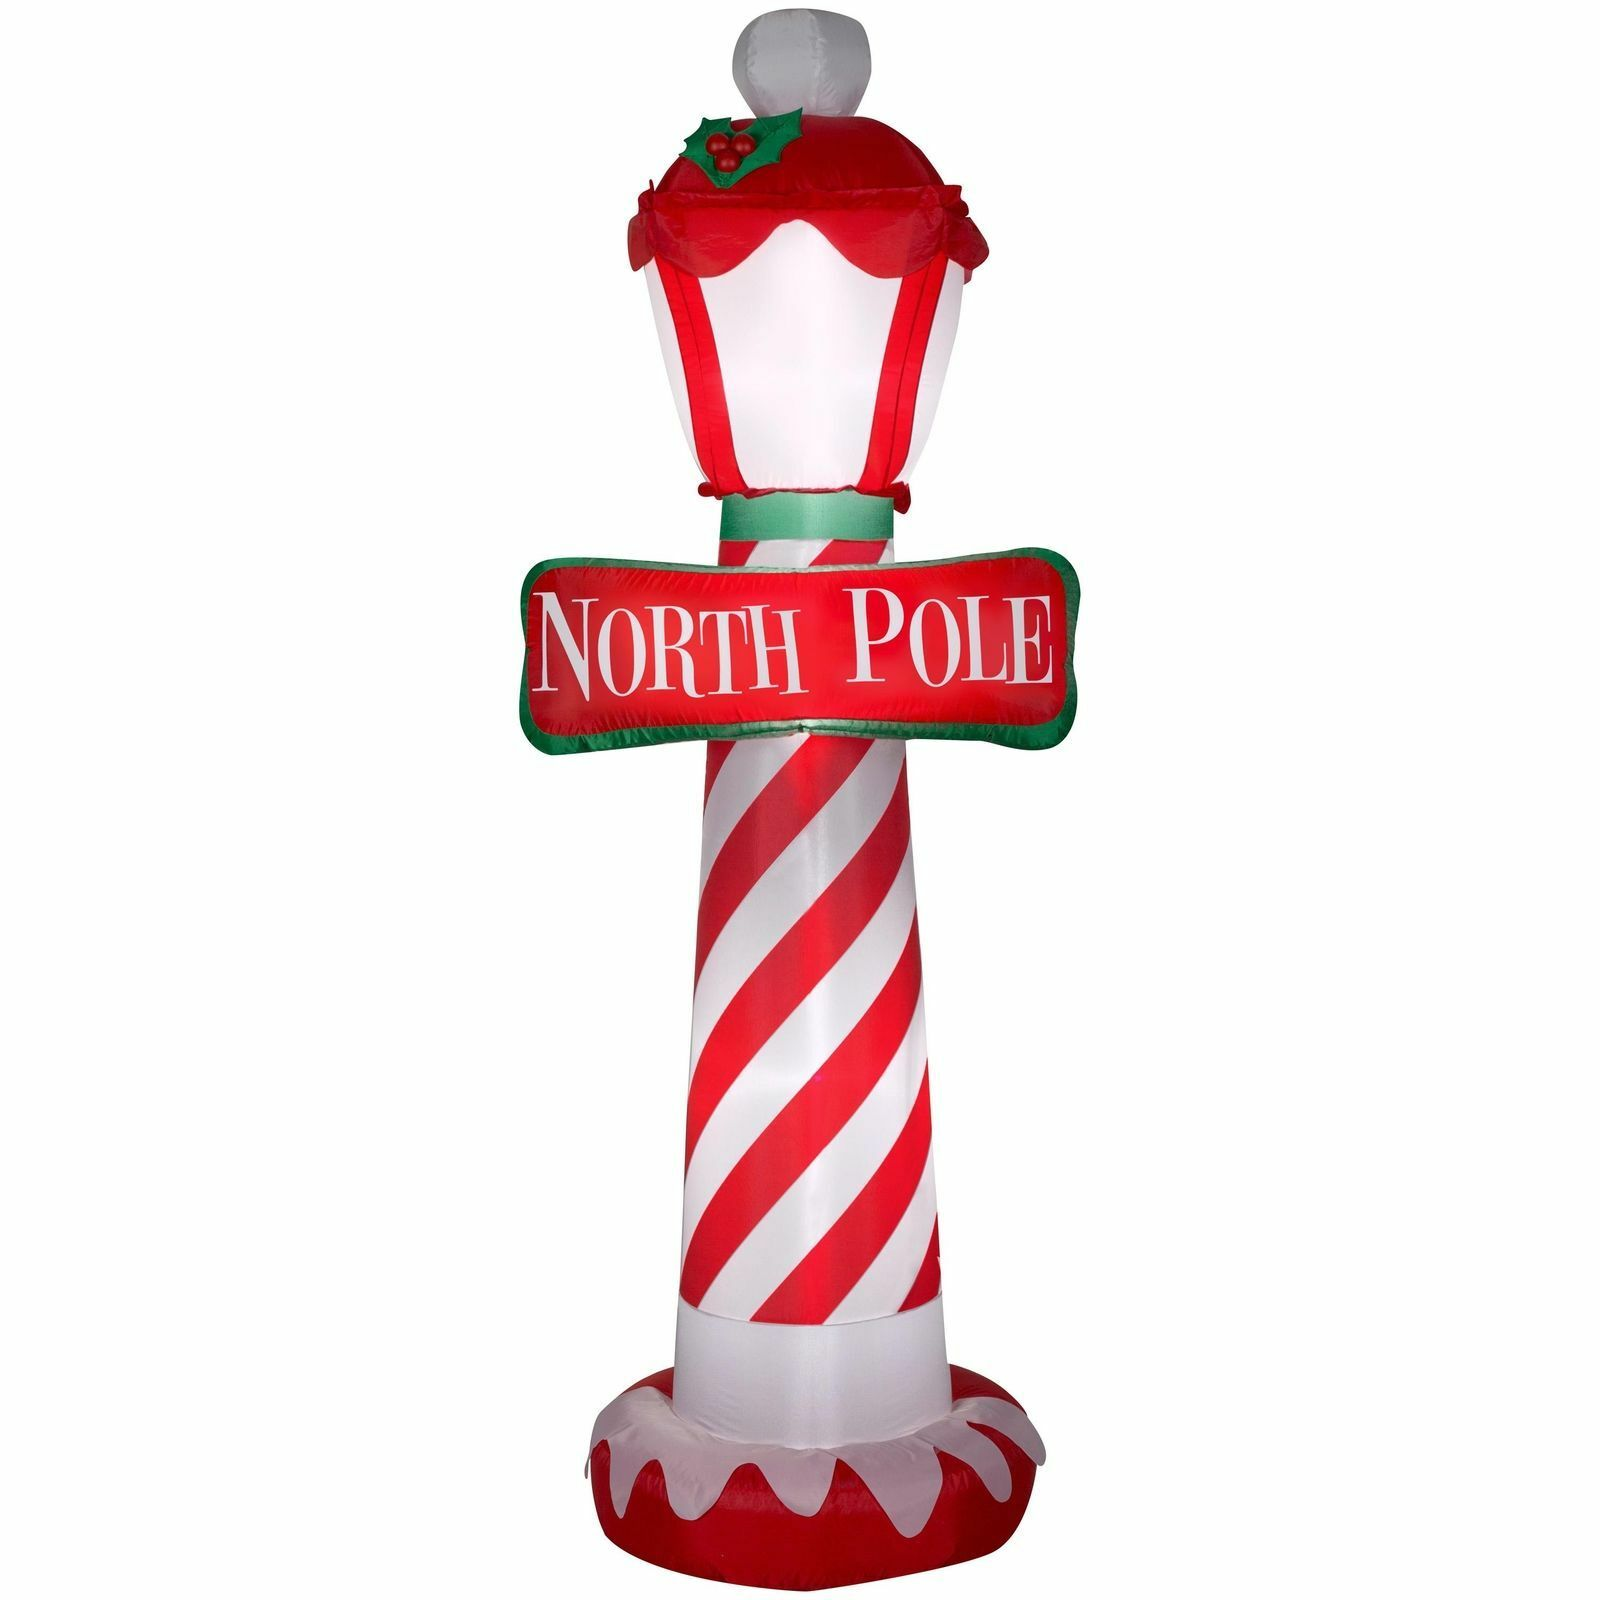 AIRBLOWN INFLATABLE-NORTH POLE 7ft tall by Gemmy Industries ...